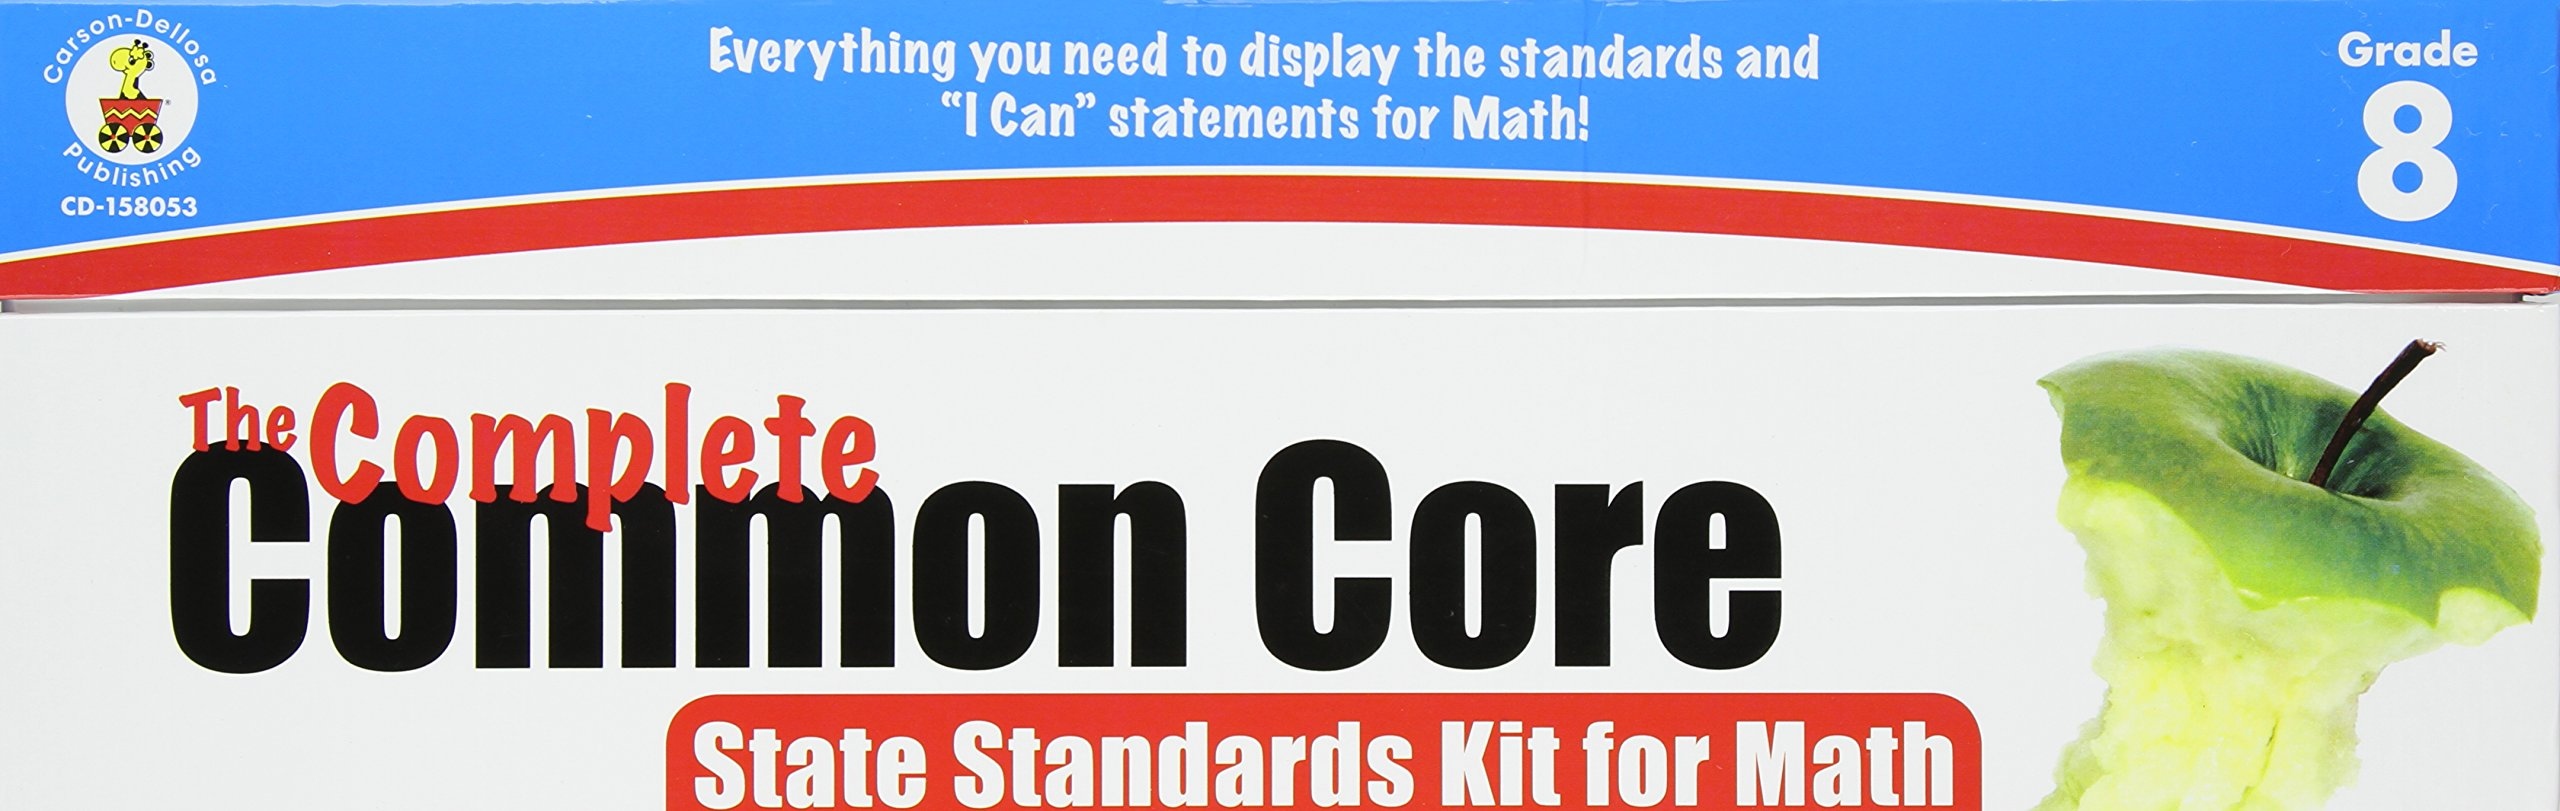 The Complete Common Core State Standards Kit for Math, Grade 8